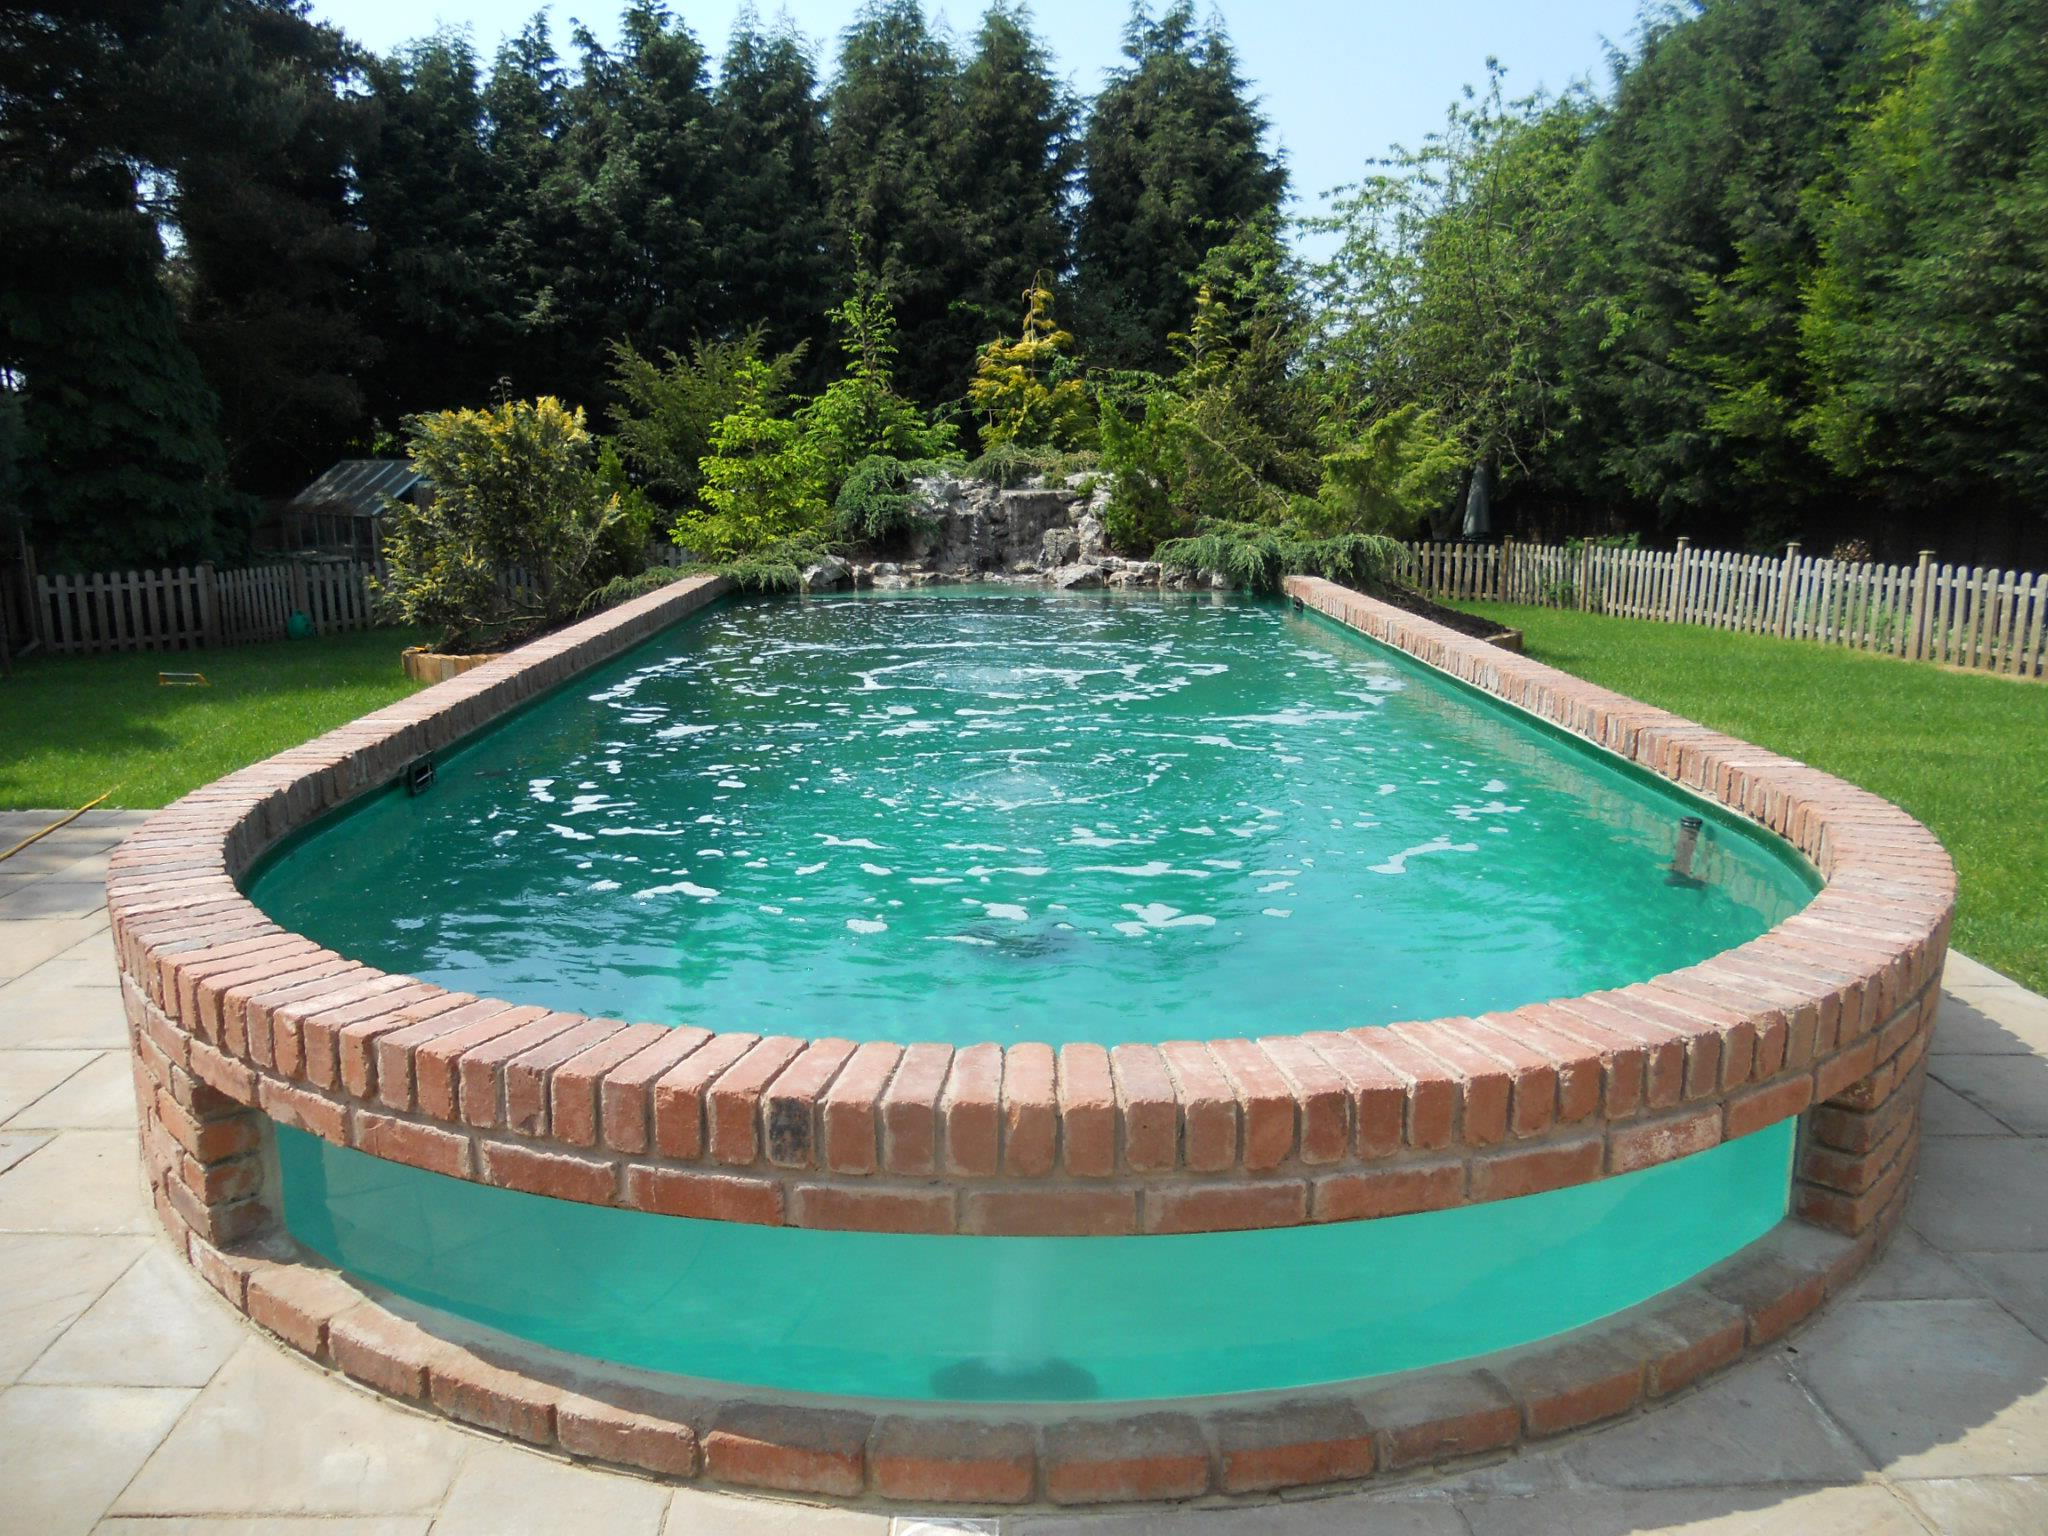 Above Ground Pools Can Come With Waterfall Features Image Source